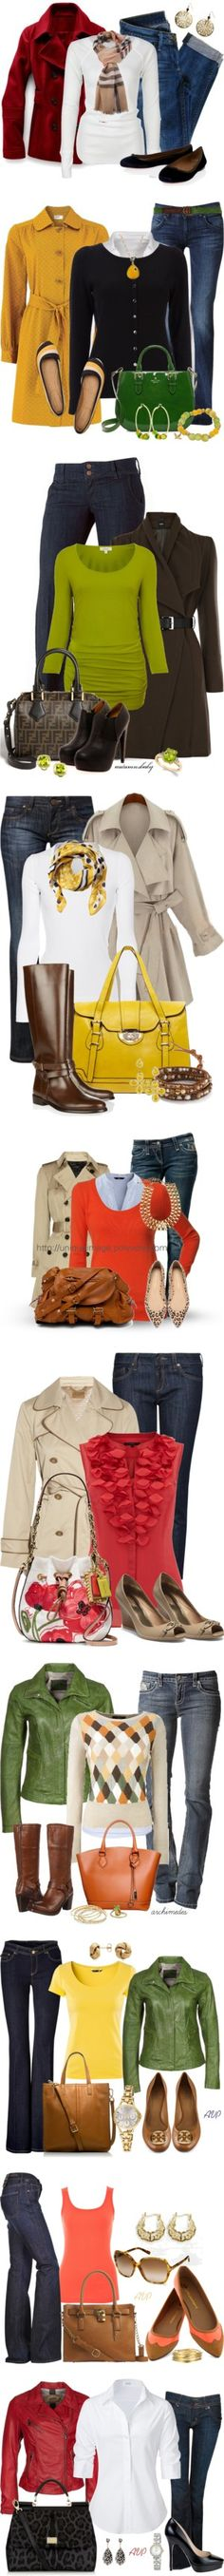 """January"" by amy-phelps on Polyvore"